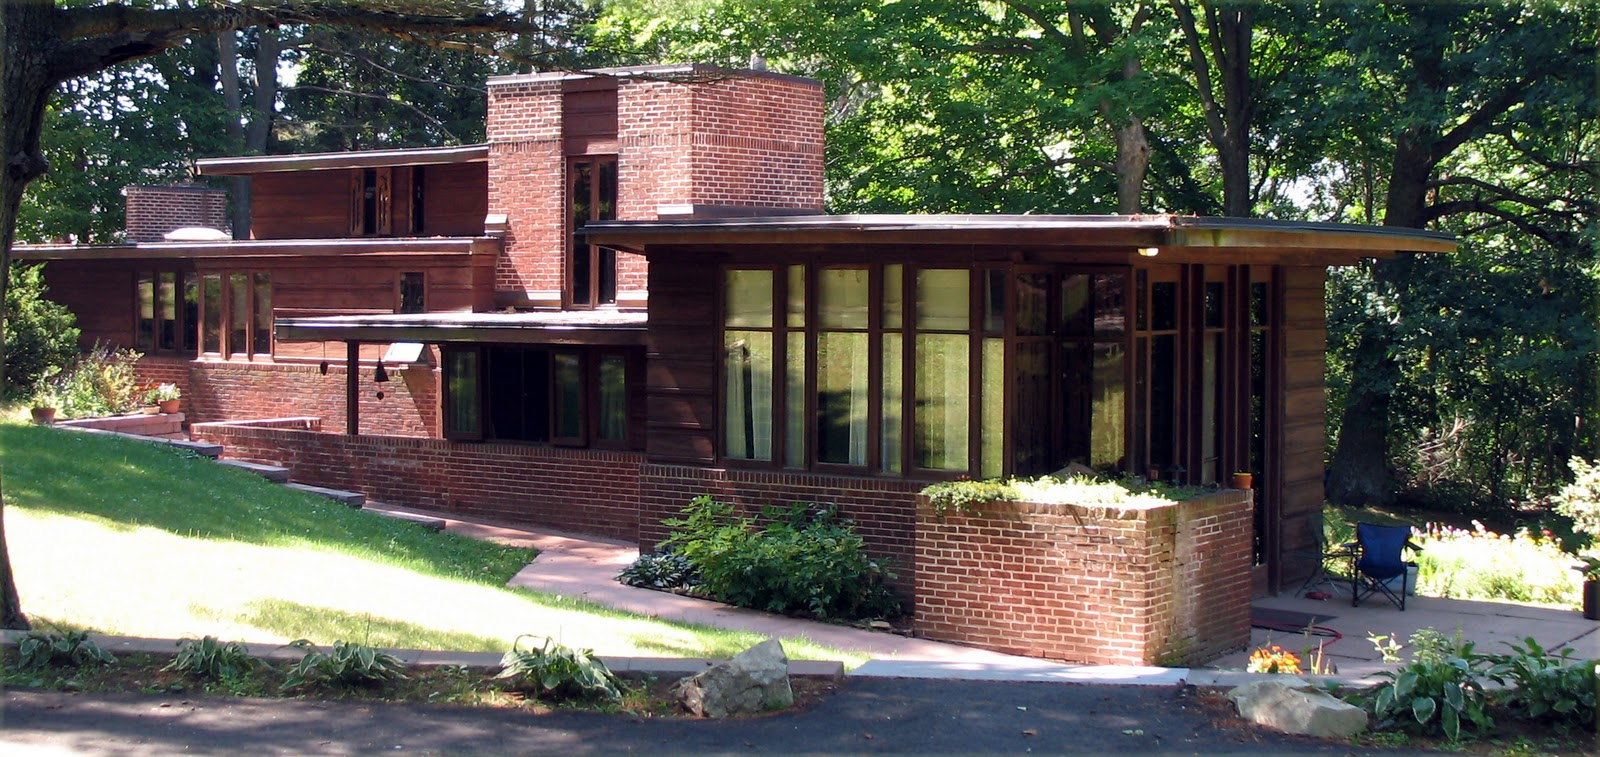 Bad blog about design architect of the week frank for Frank lloyd wright home designs